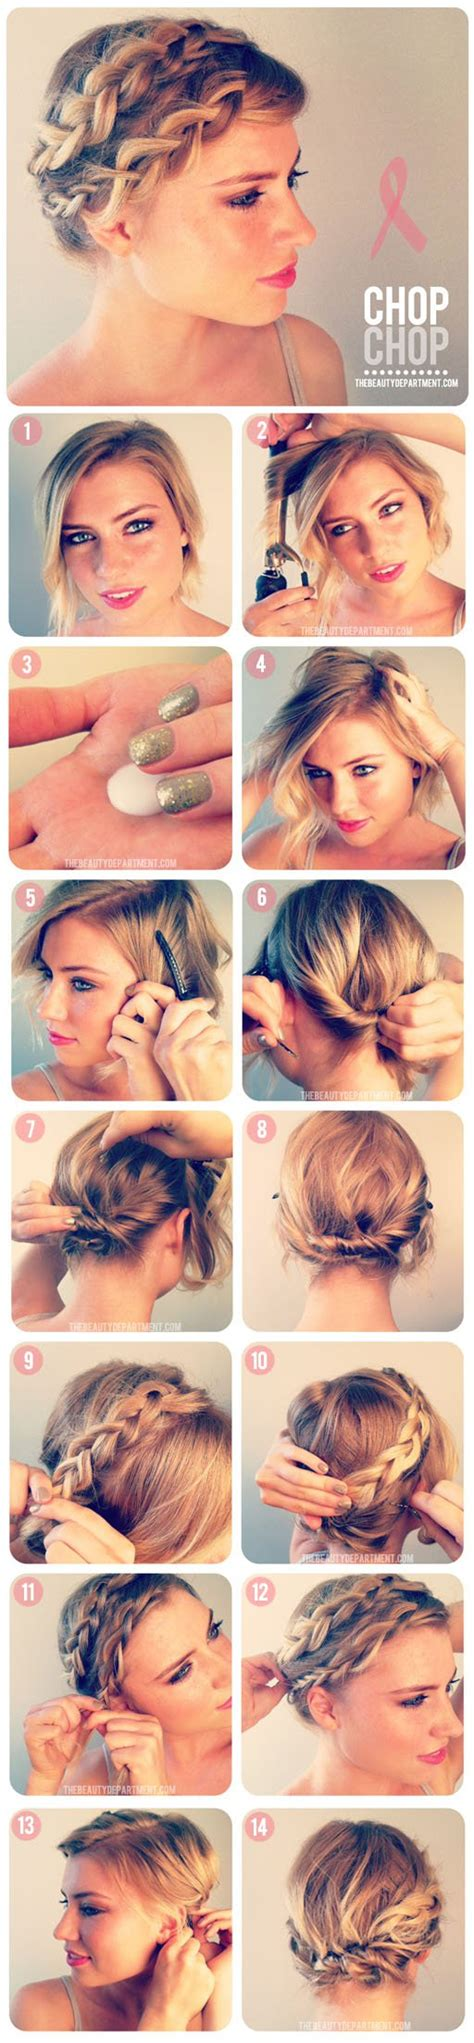 diy hairstyles with short hair 17 easy diy tutorials for glamorous and cute hairstyle